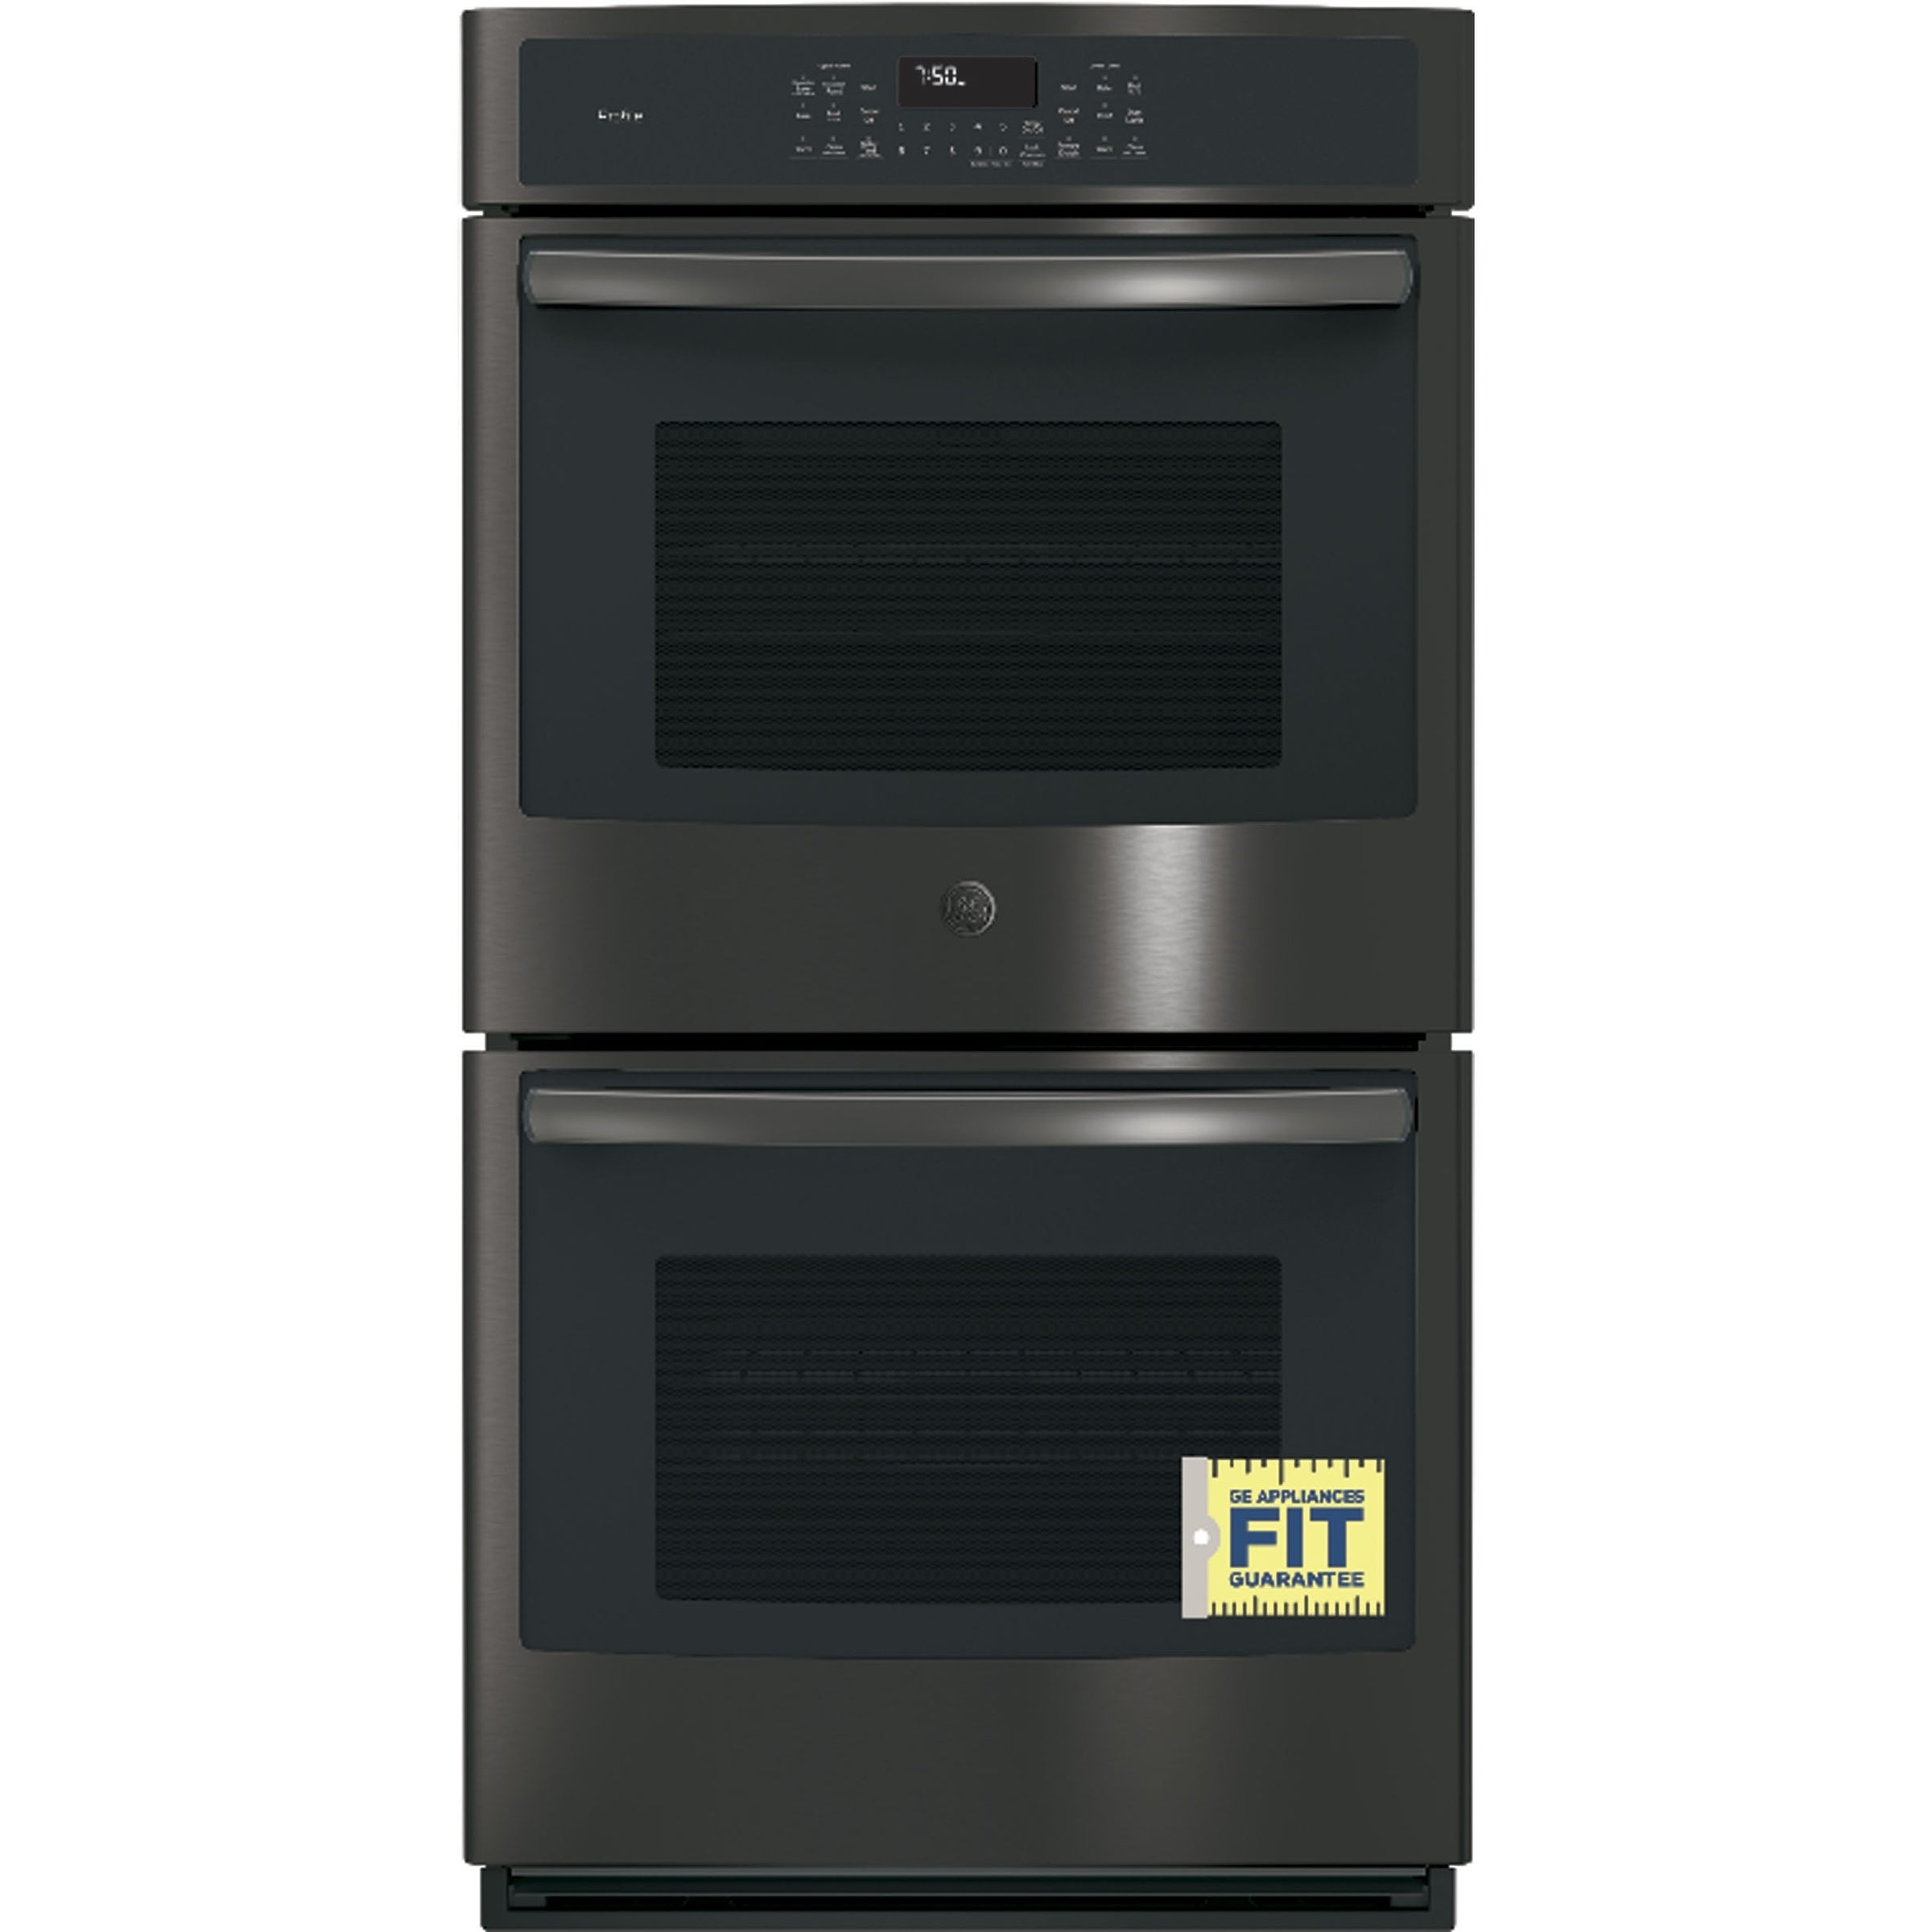 Ge Profile Series 27 Inch Built In Double Convection Wall